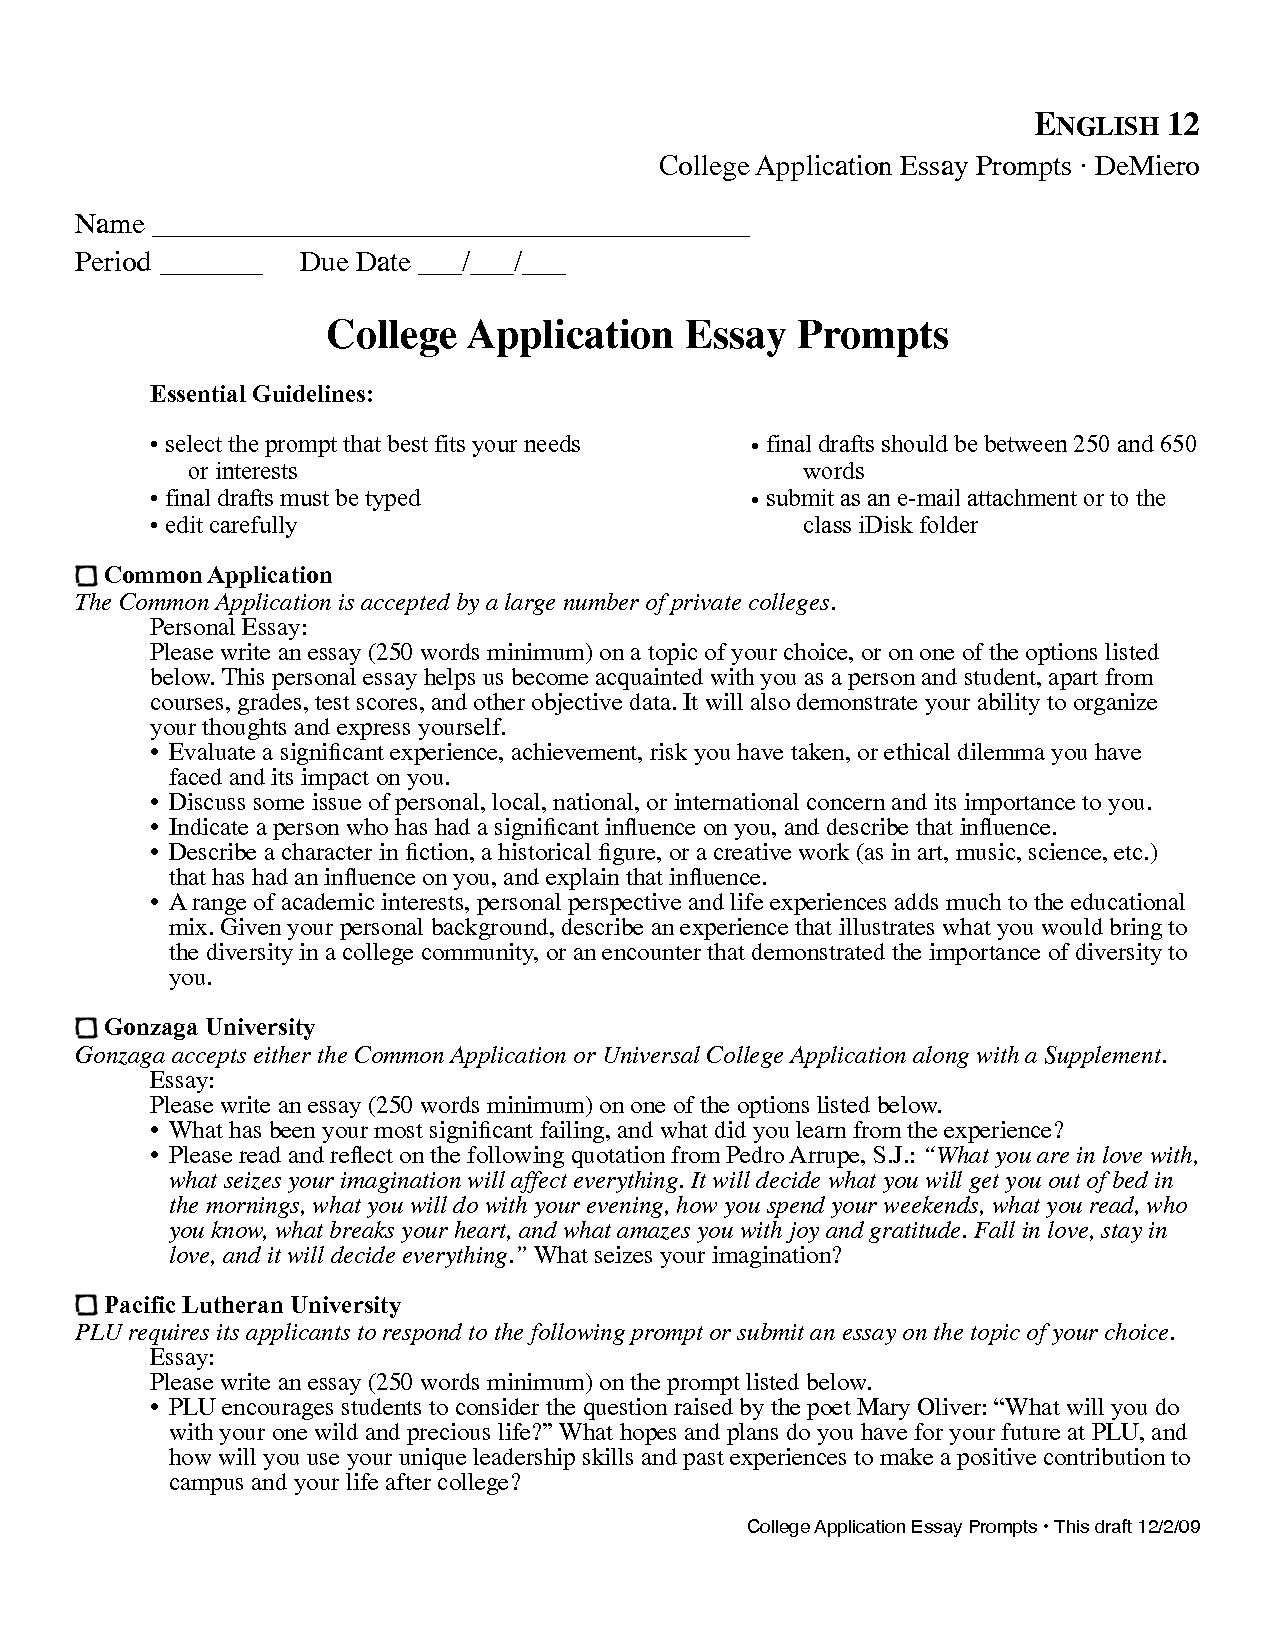 university of illinois essays for application The uiuc undergraduate application form serves as your application to all campus-level and college-level honors programs the supplemental chp application form will inform chp staff of any additional information that may have transpired since you submitted the uiuc application.